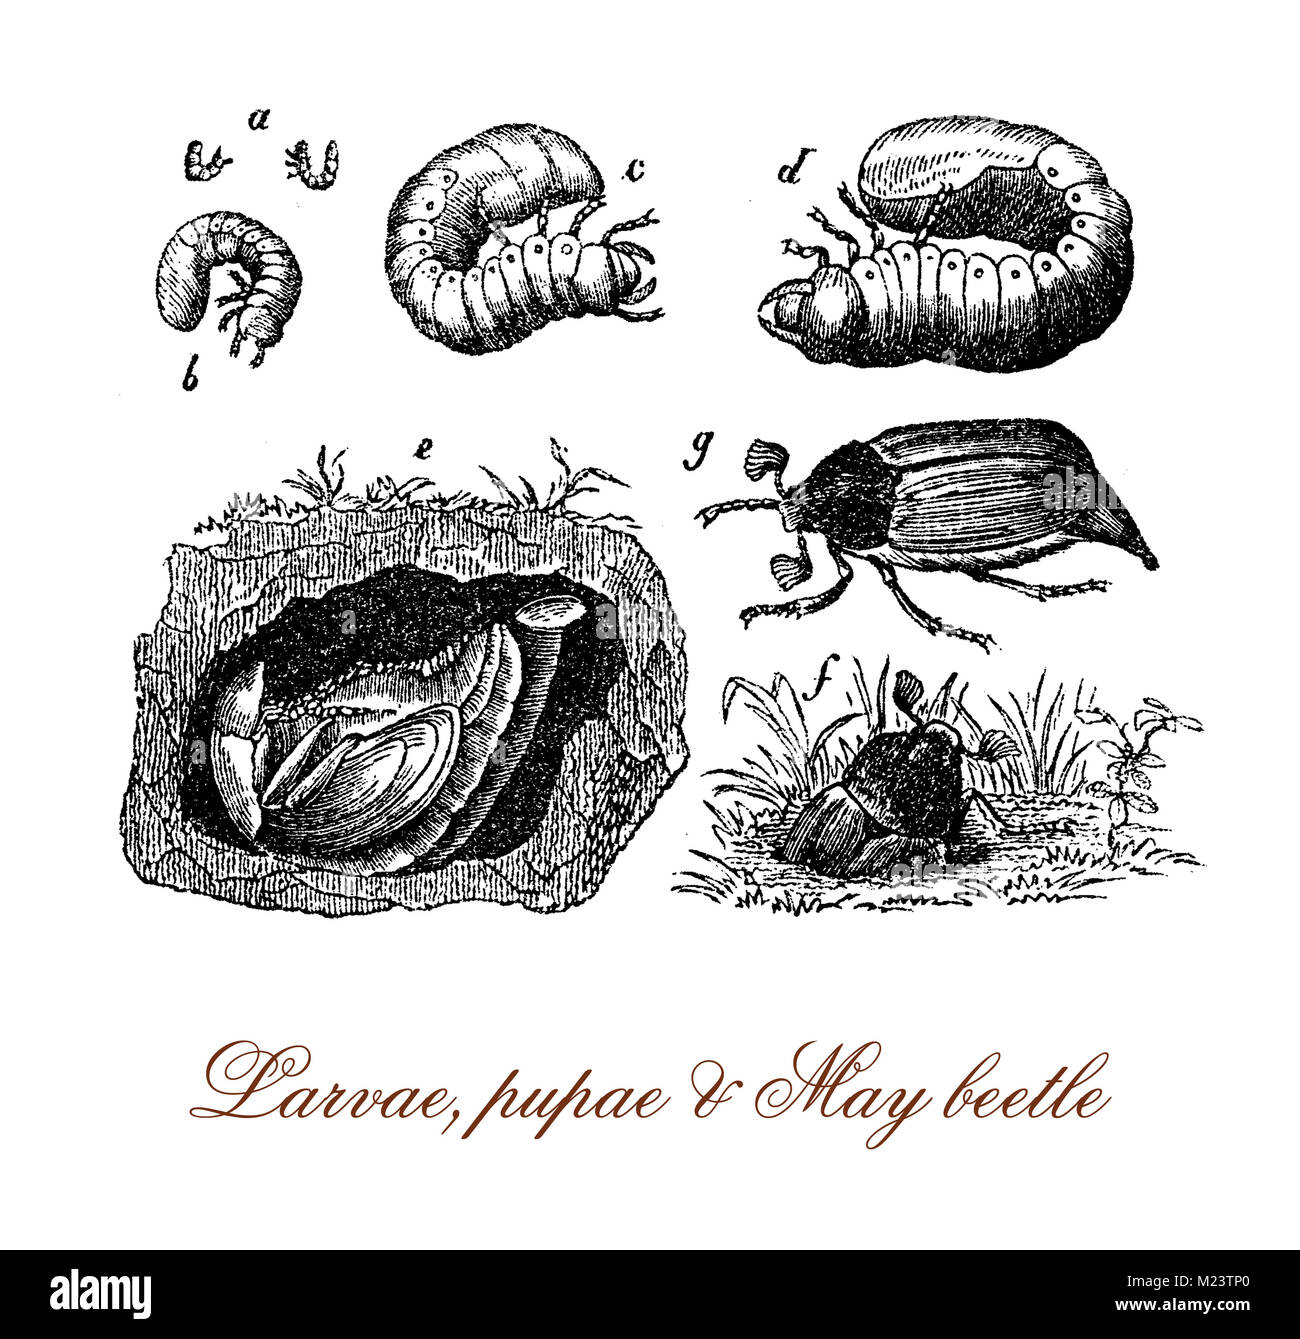 May beetle metamorphosis from larva, pupa to insect, vintage engraving - Stock Image